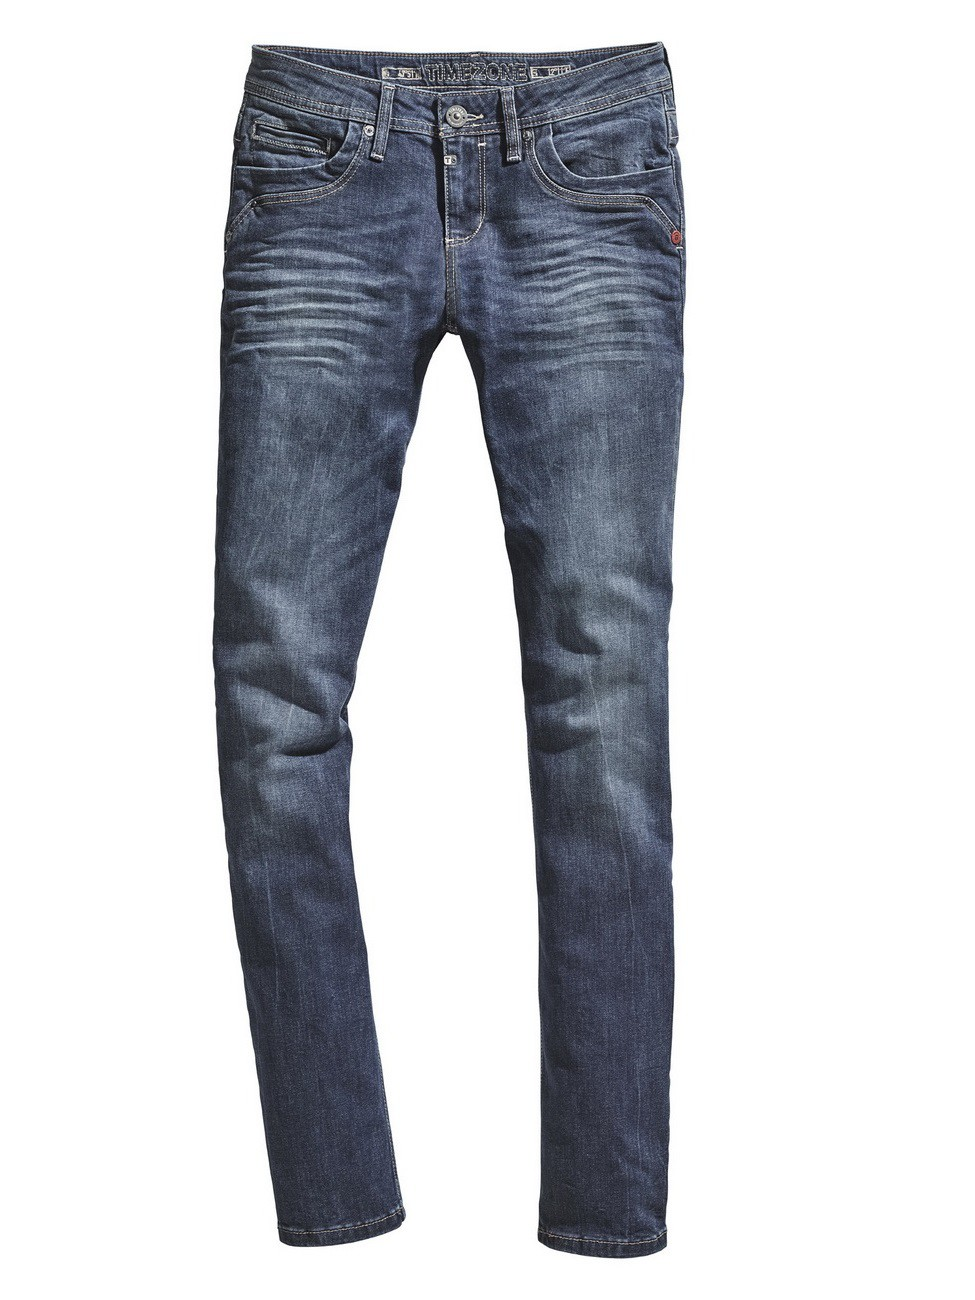 Timezone Damen Jeans TahilaTZ - Slim Fit - Blau - Surfer Wash